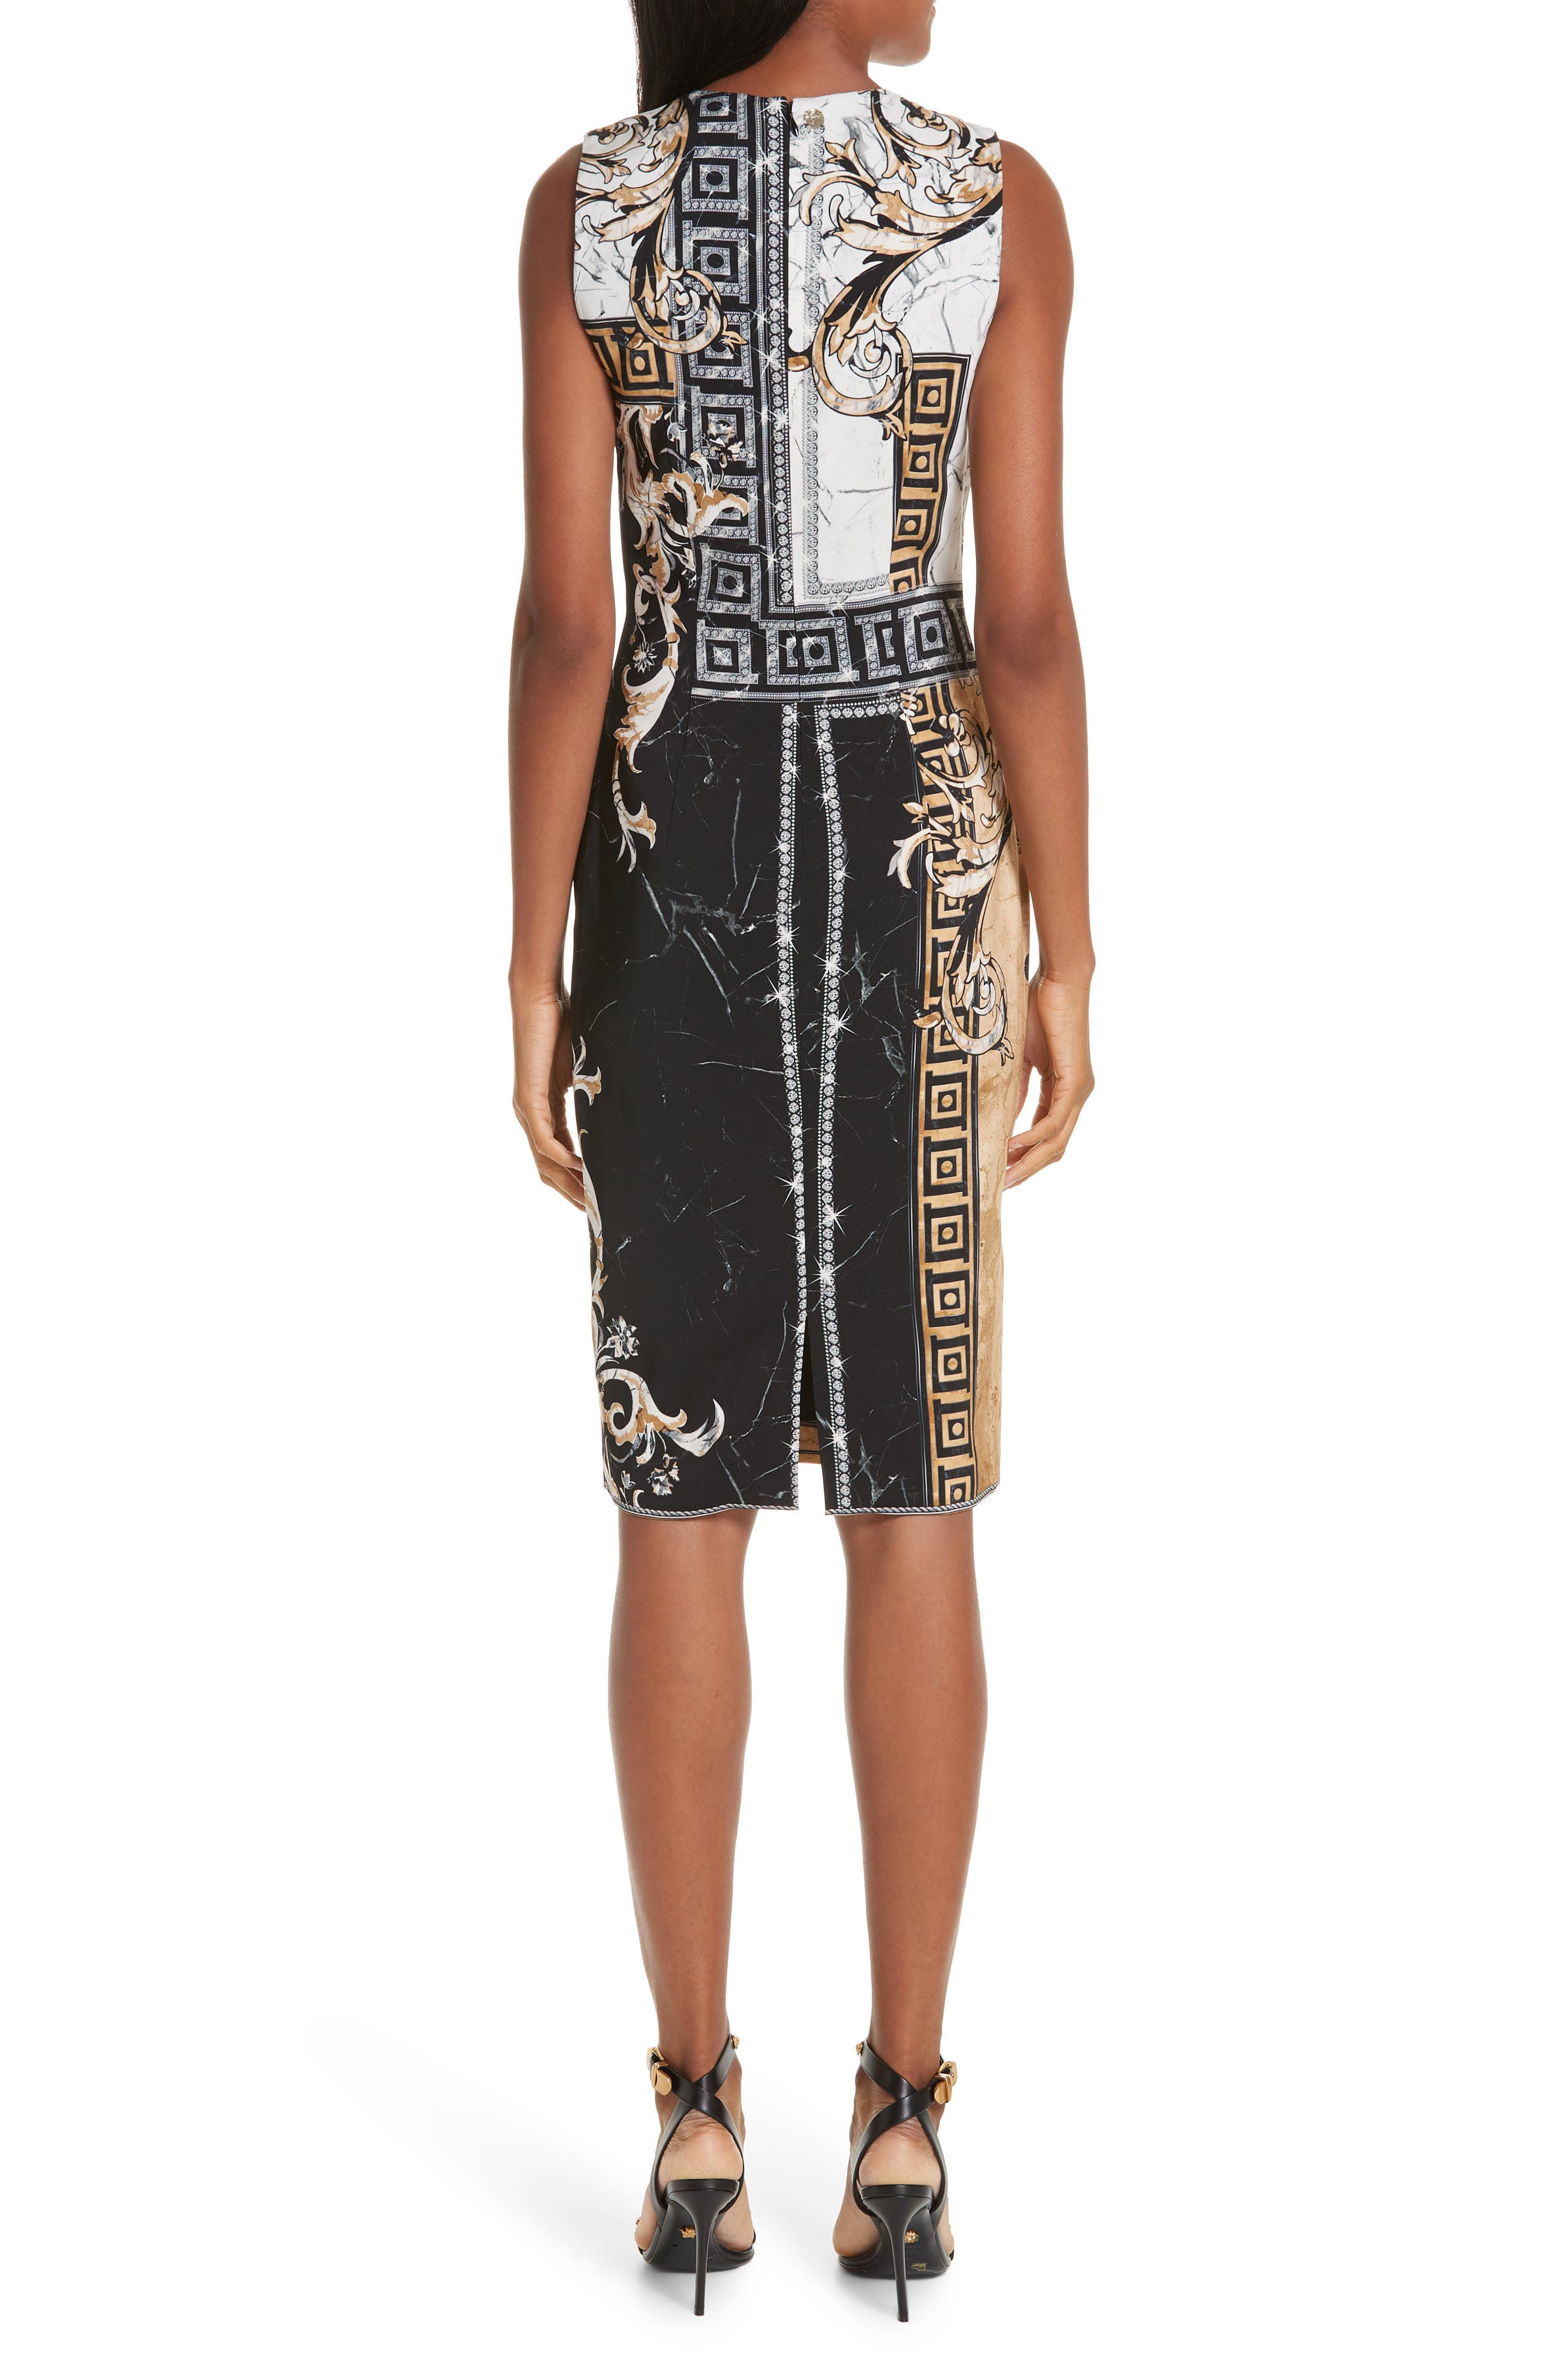 VERSACE COLLECTION, Marble Print Sheath Dress, Alternate thumbnail 2, color, BLACK